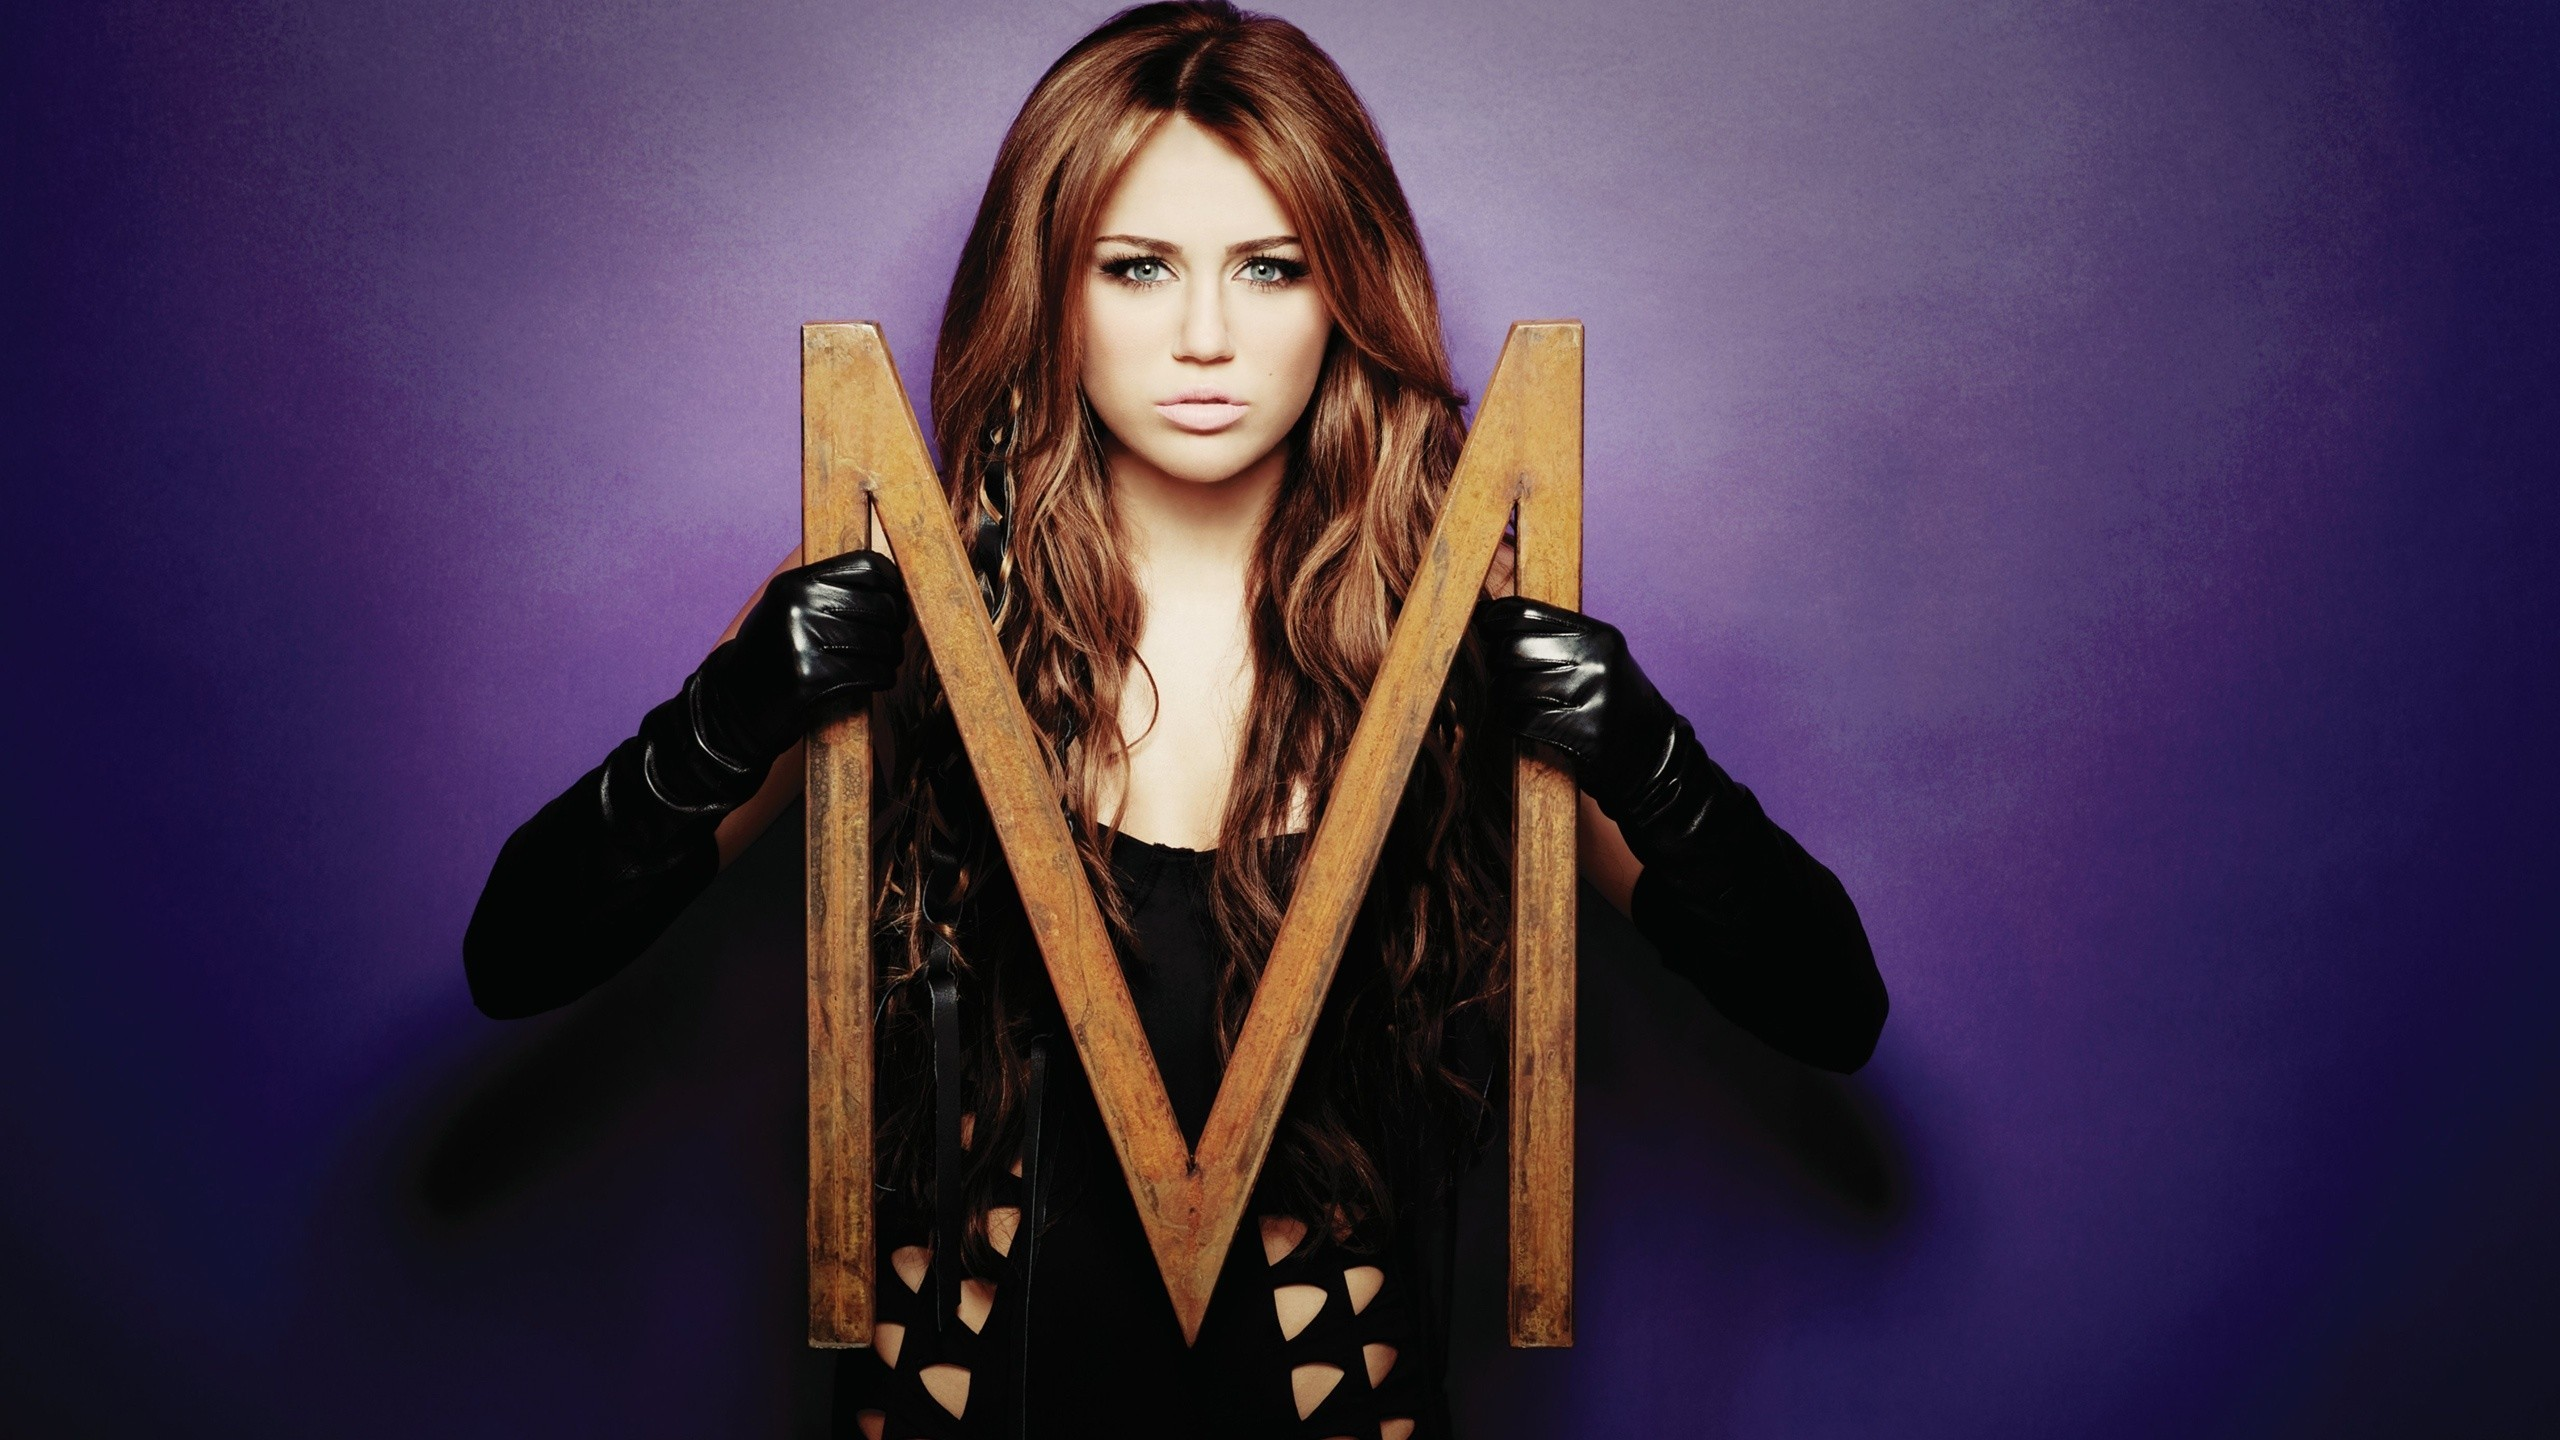 woman miley cyrus gloves HD Wallpaper